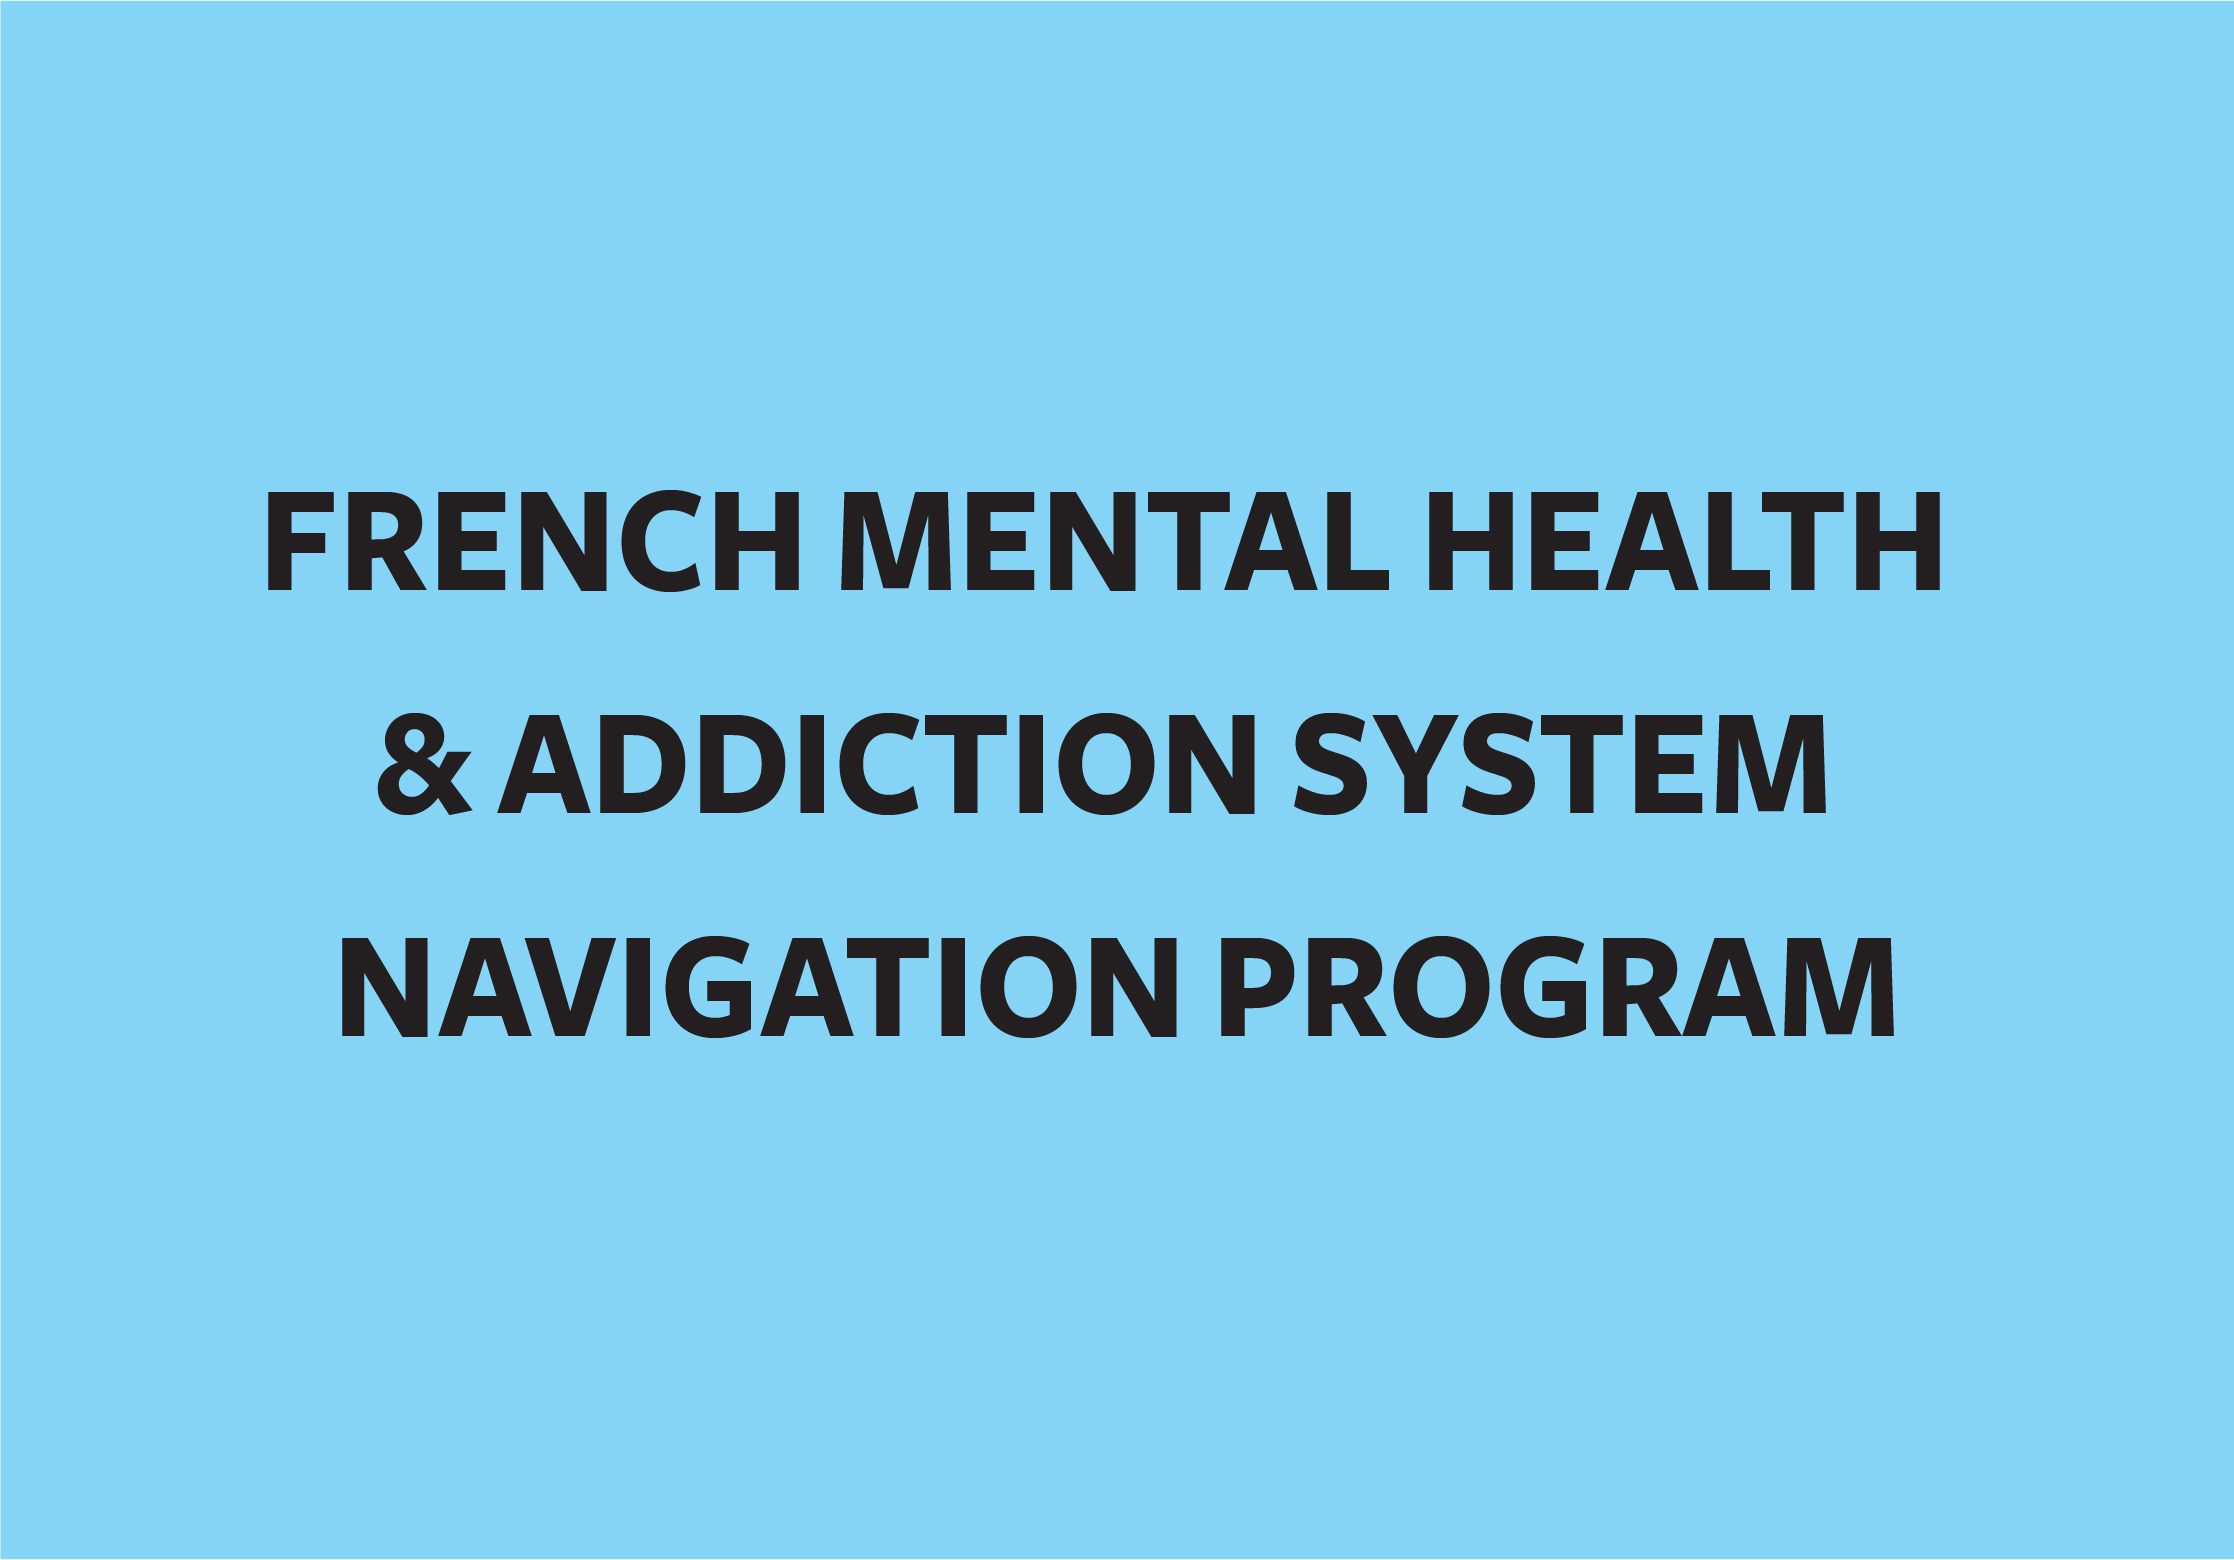 Link to the French Mental Health and Addiction System Navigation Program page